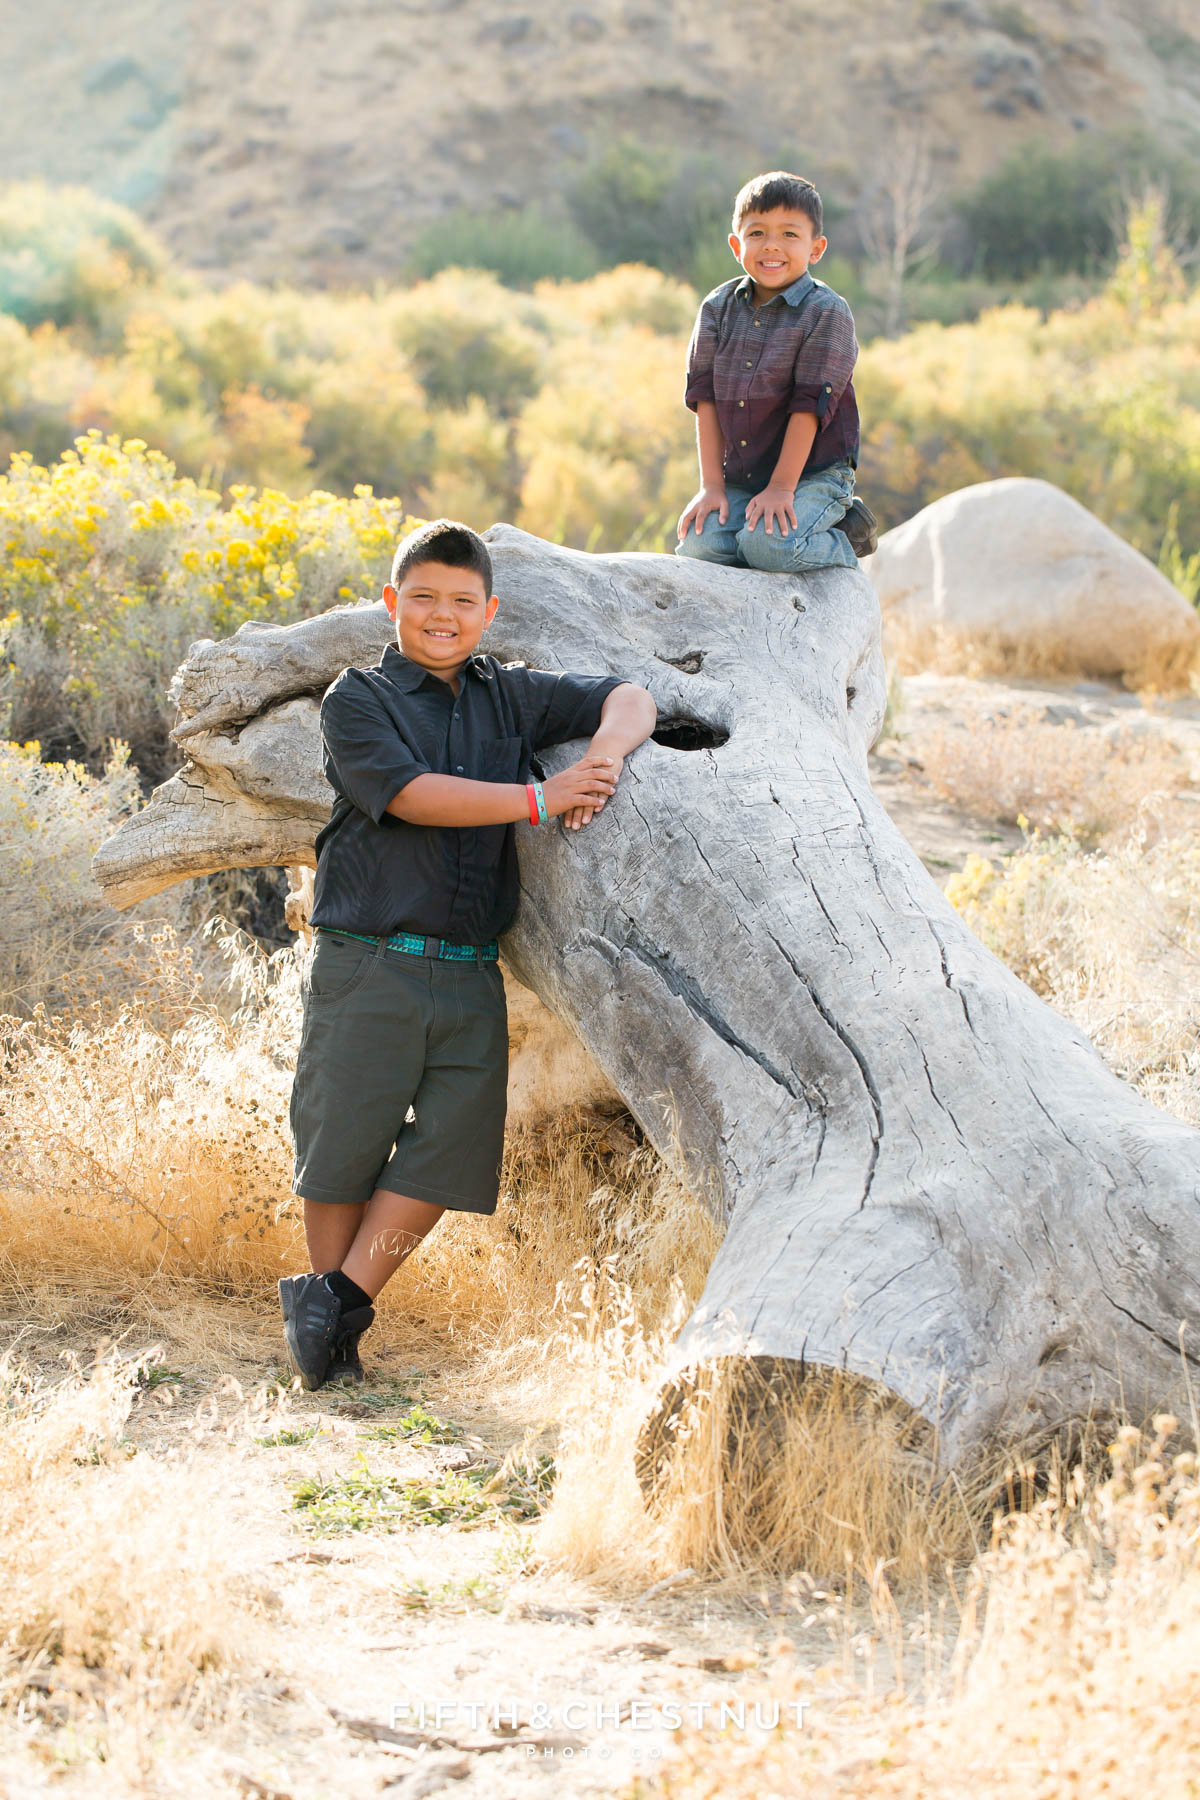 two children from hawaii pose on a fallen log for vibrant fall portraits at Mayberry Park